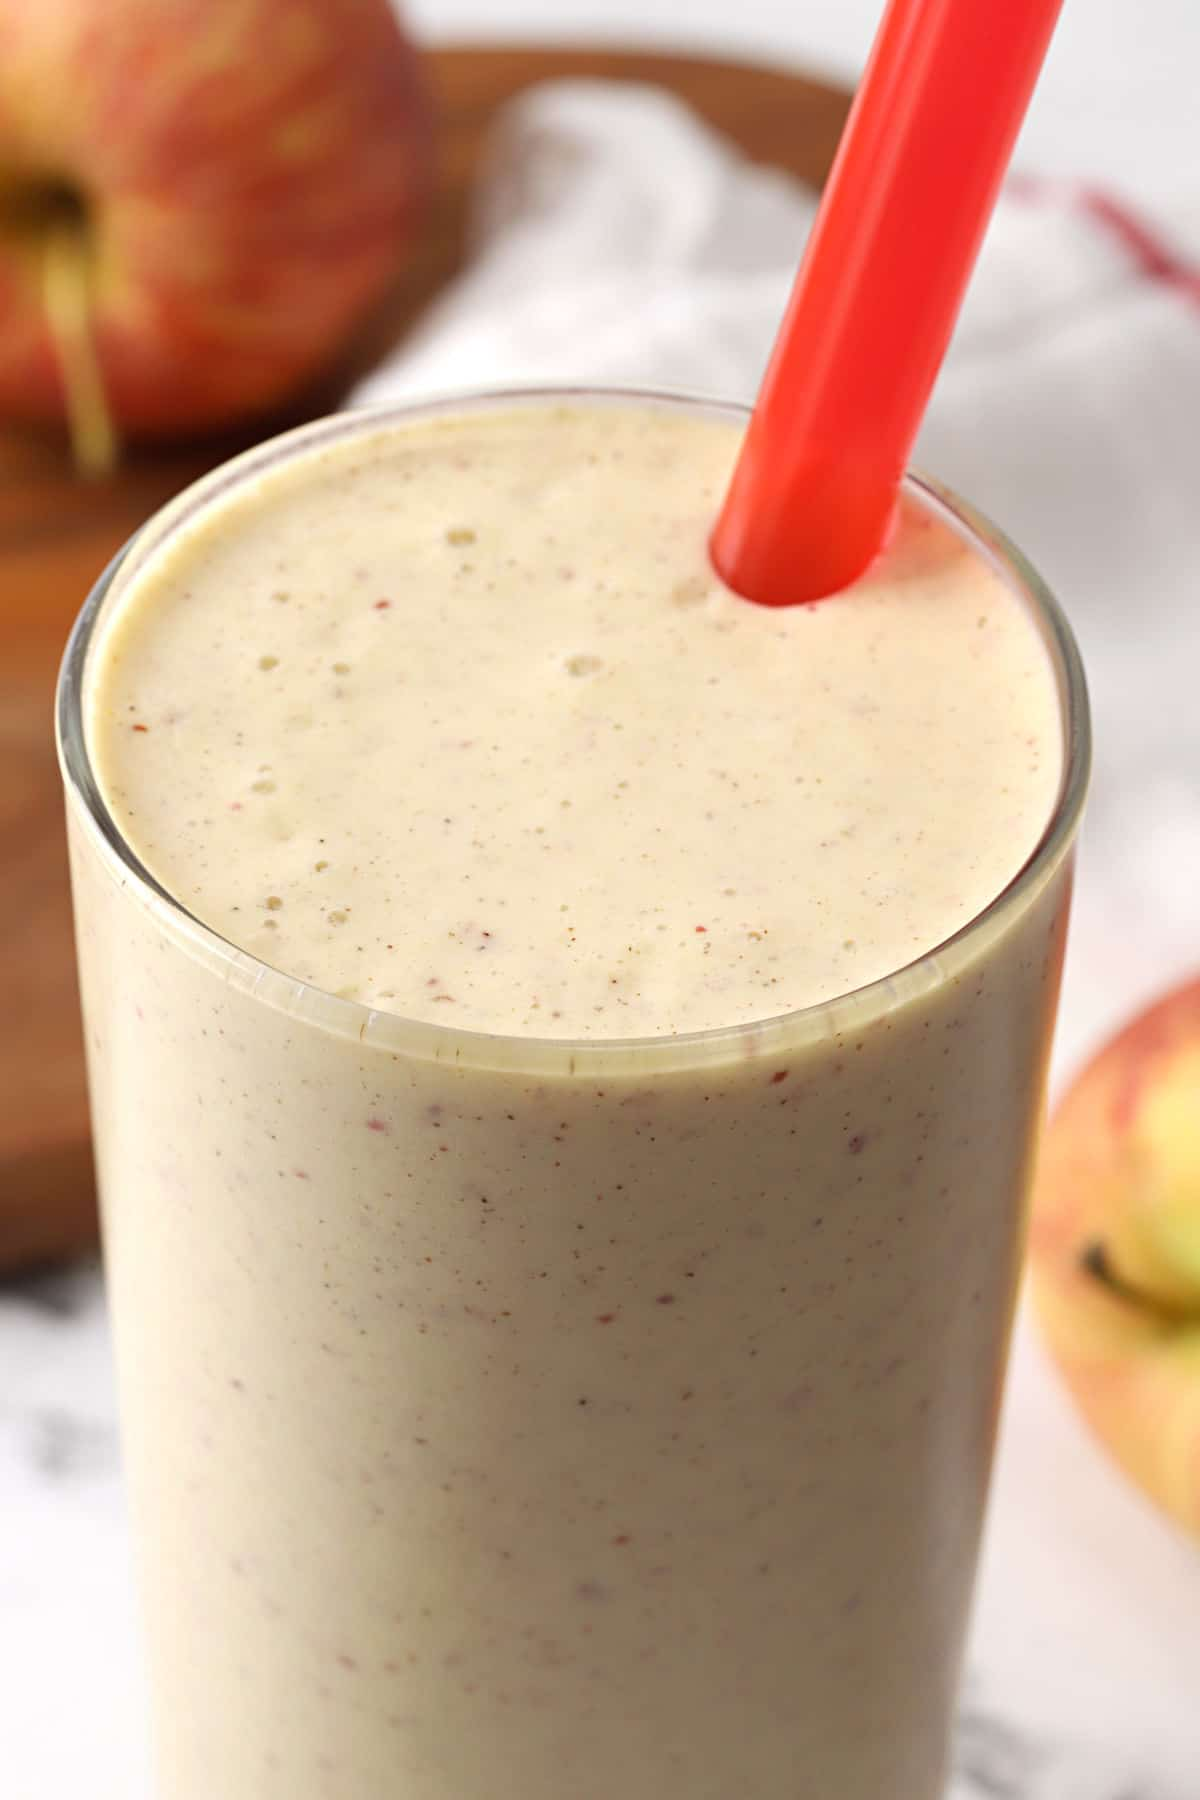 Close up of light brown smoothie in a glass with a red straw.